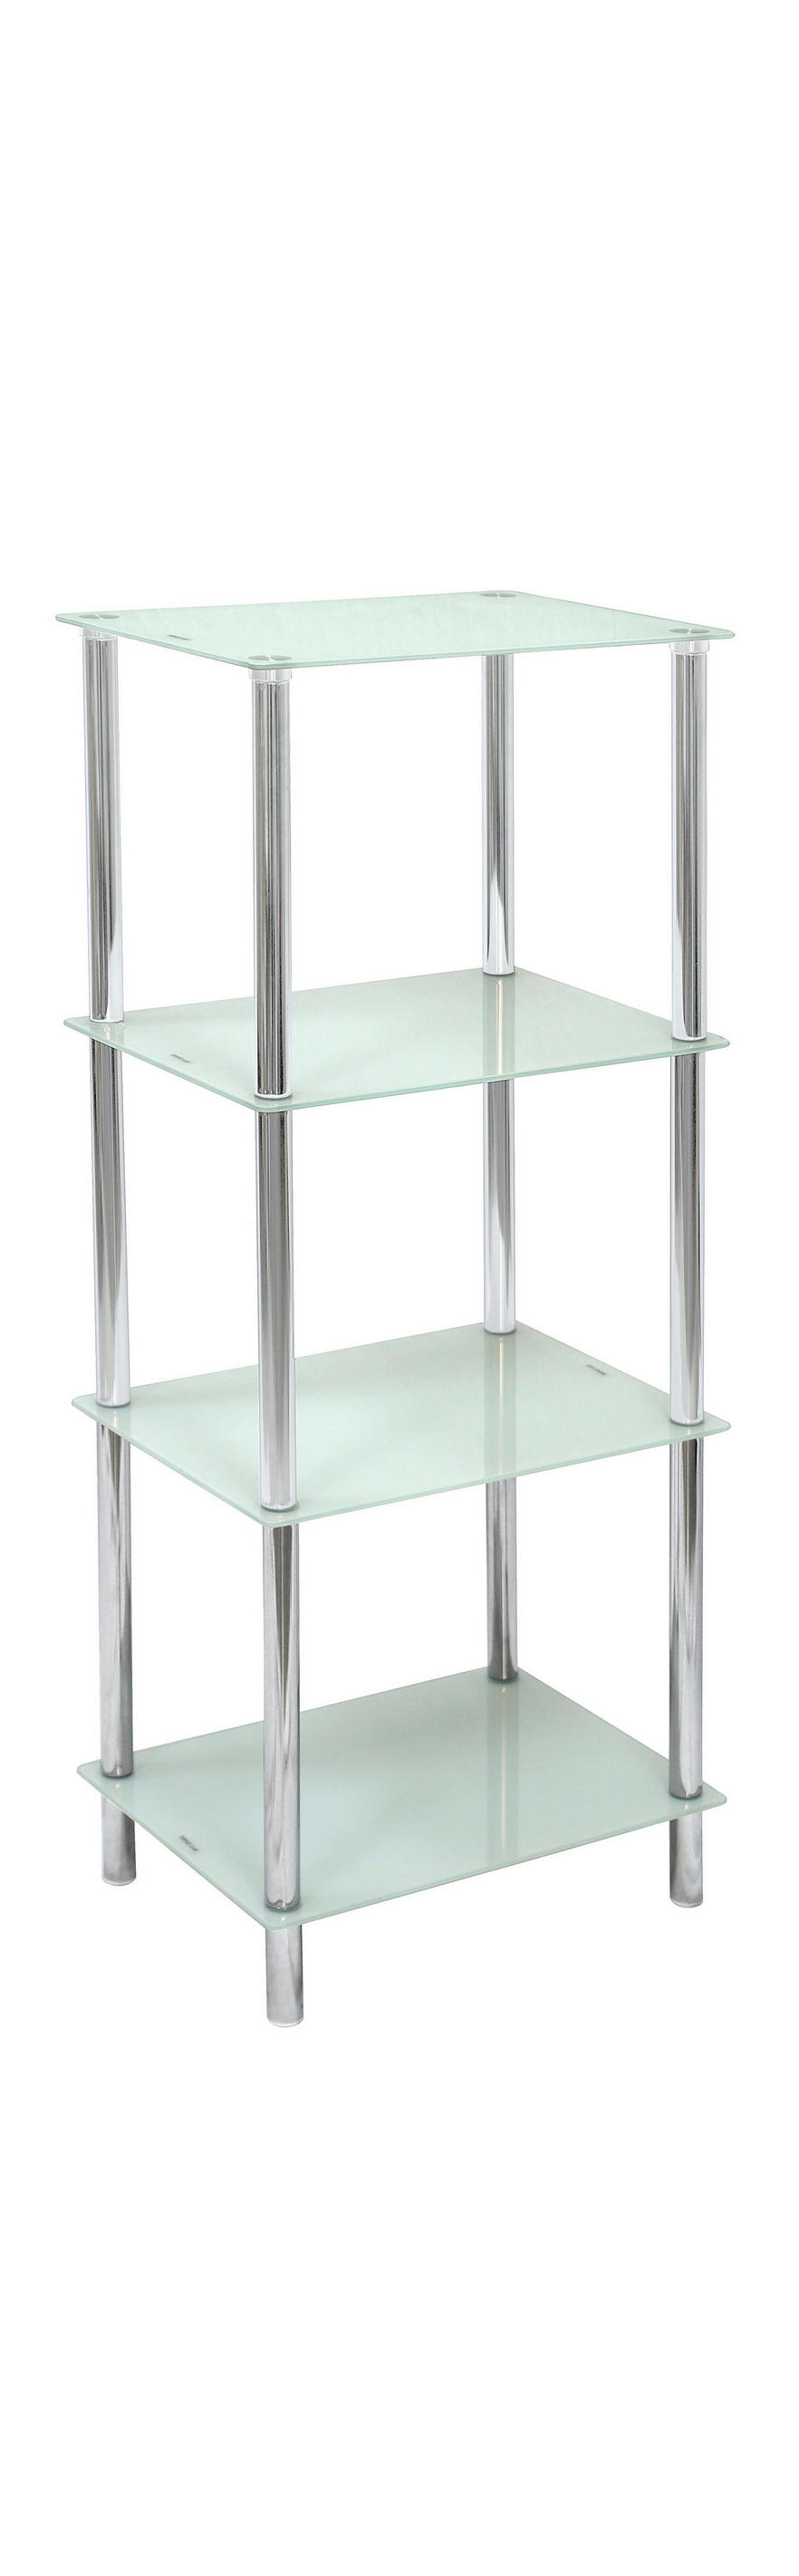 Badezimmer Regal Glas Chrom